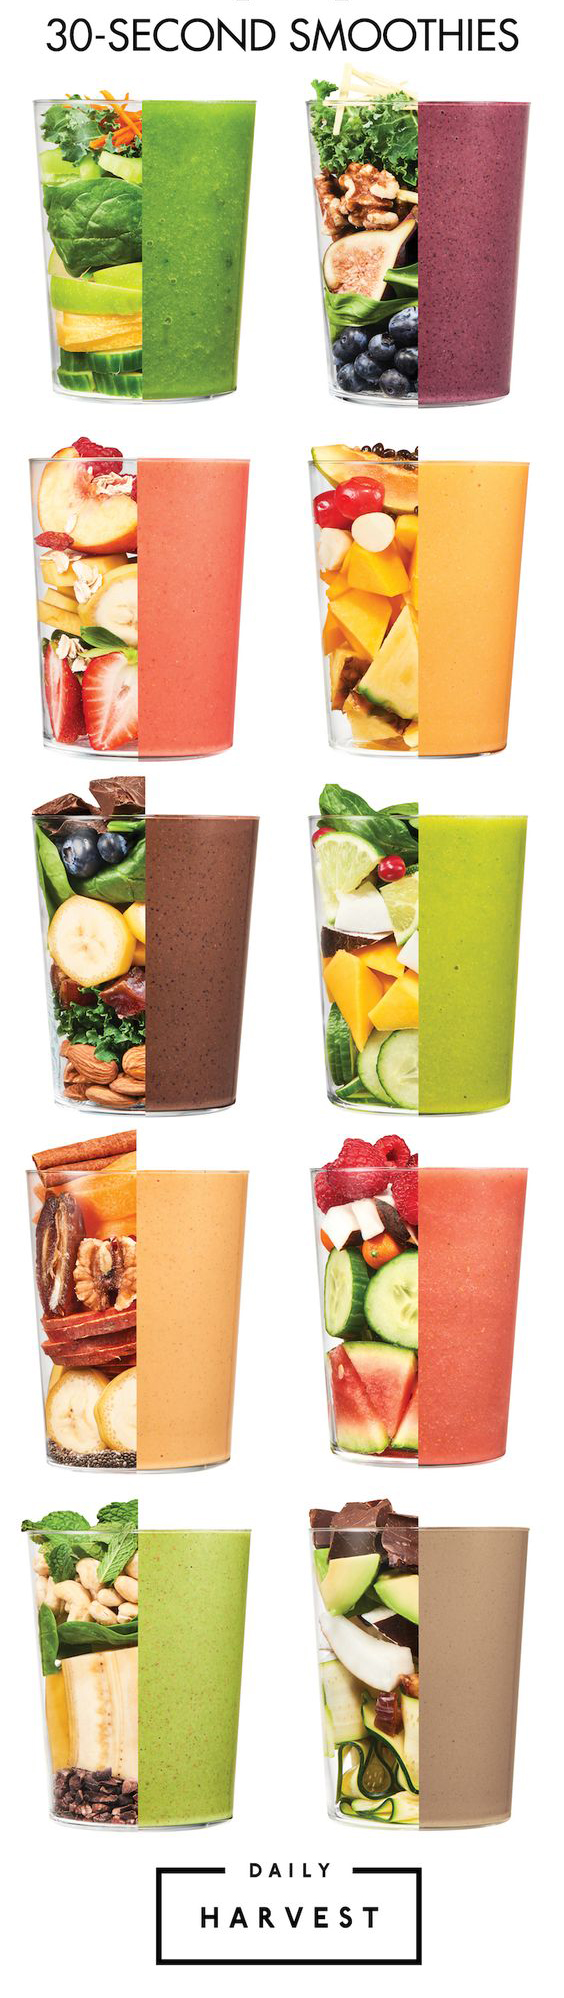 30 second smoothies